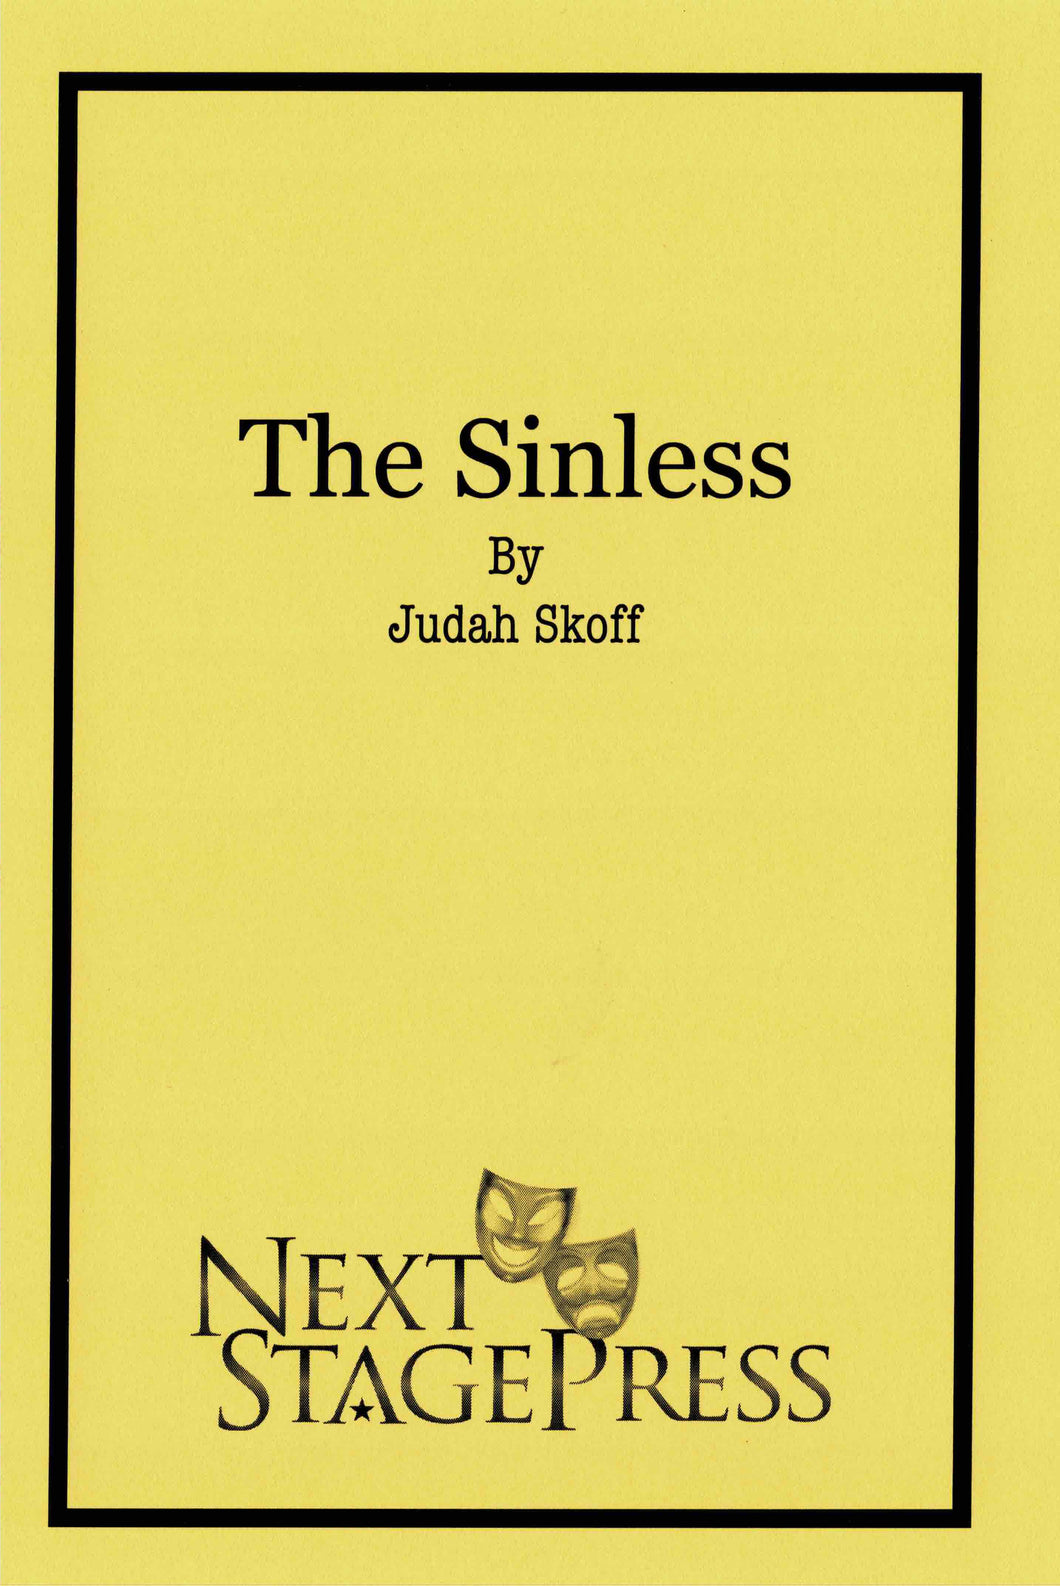 The Sinless- Digital Version